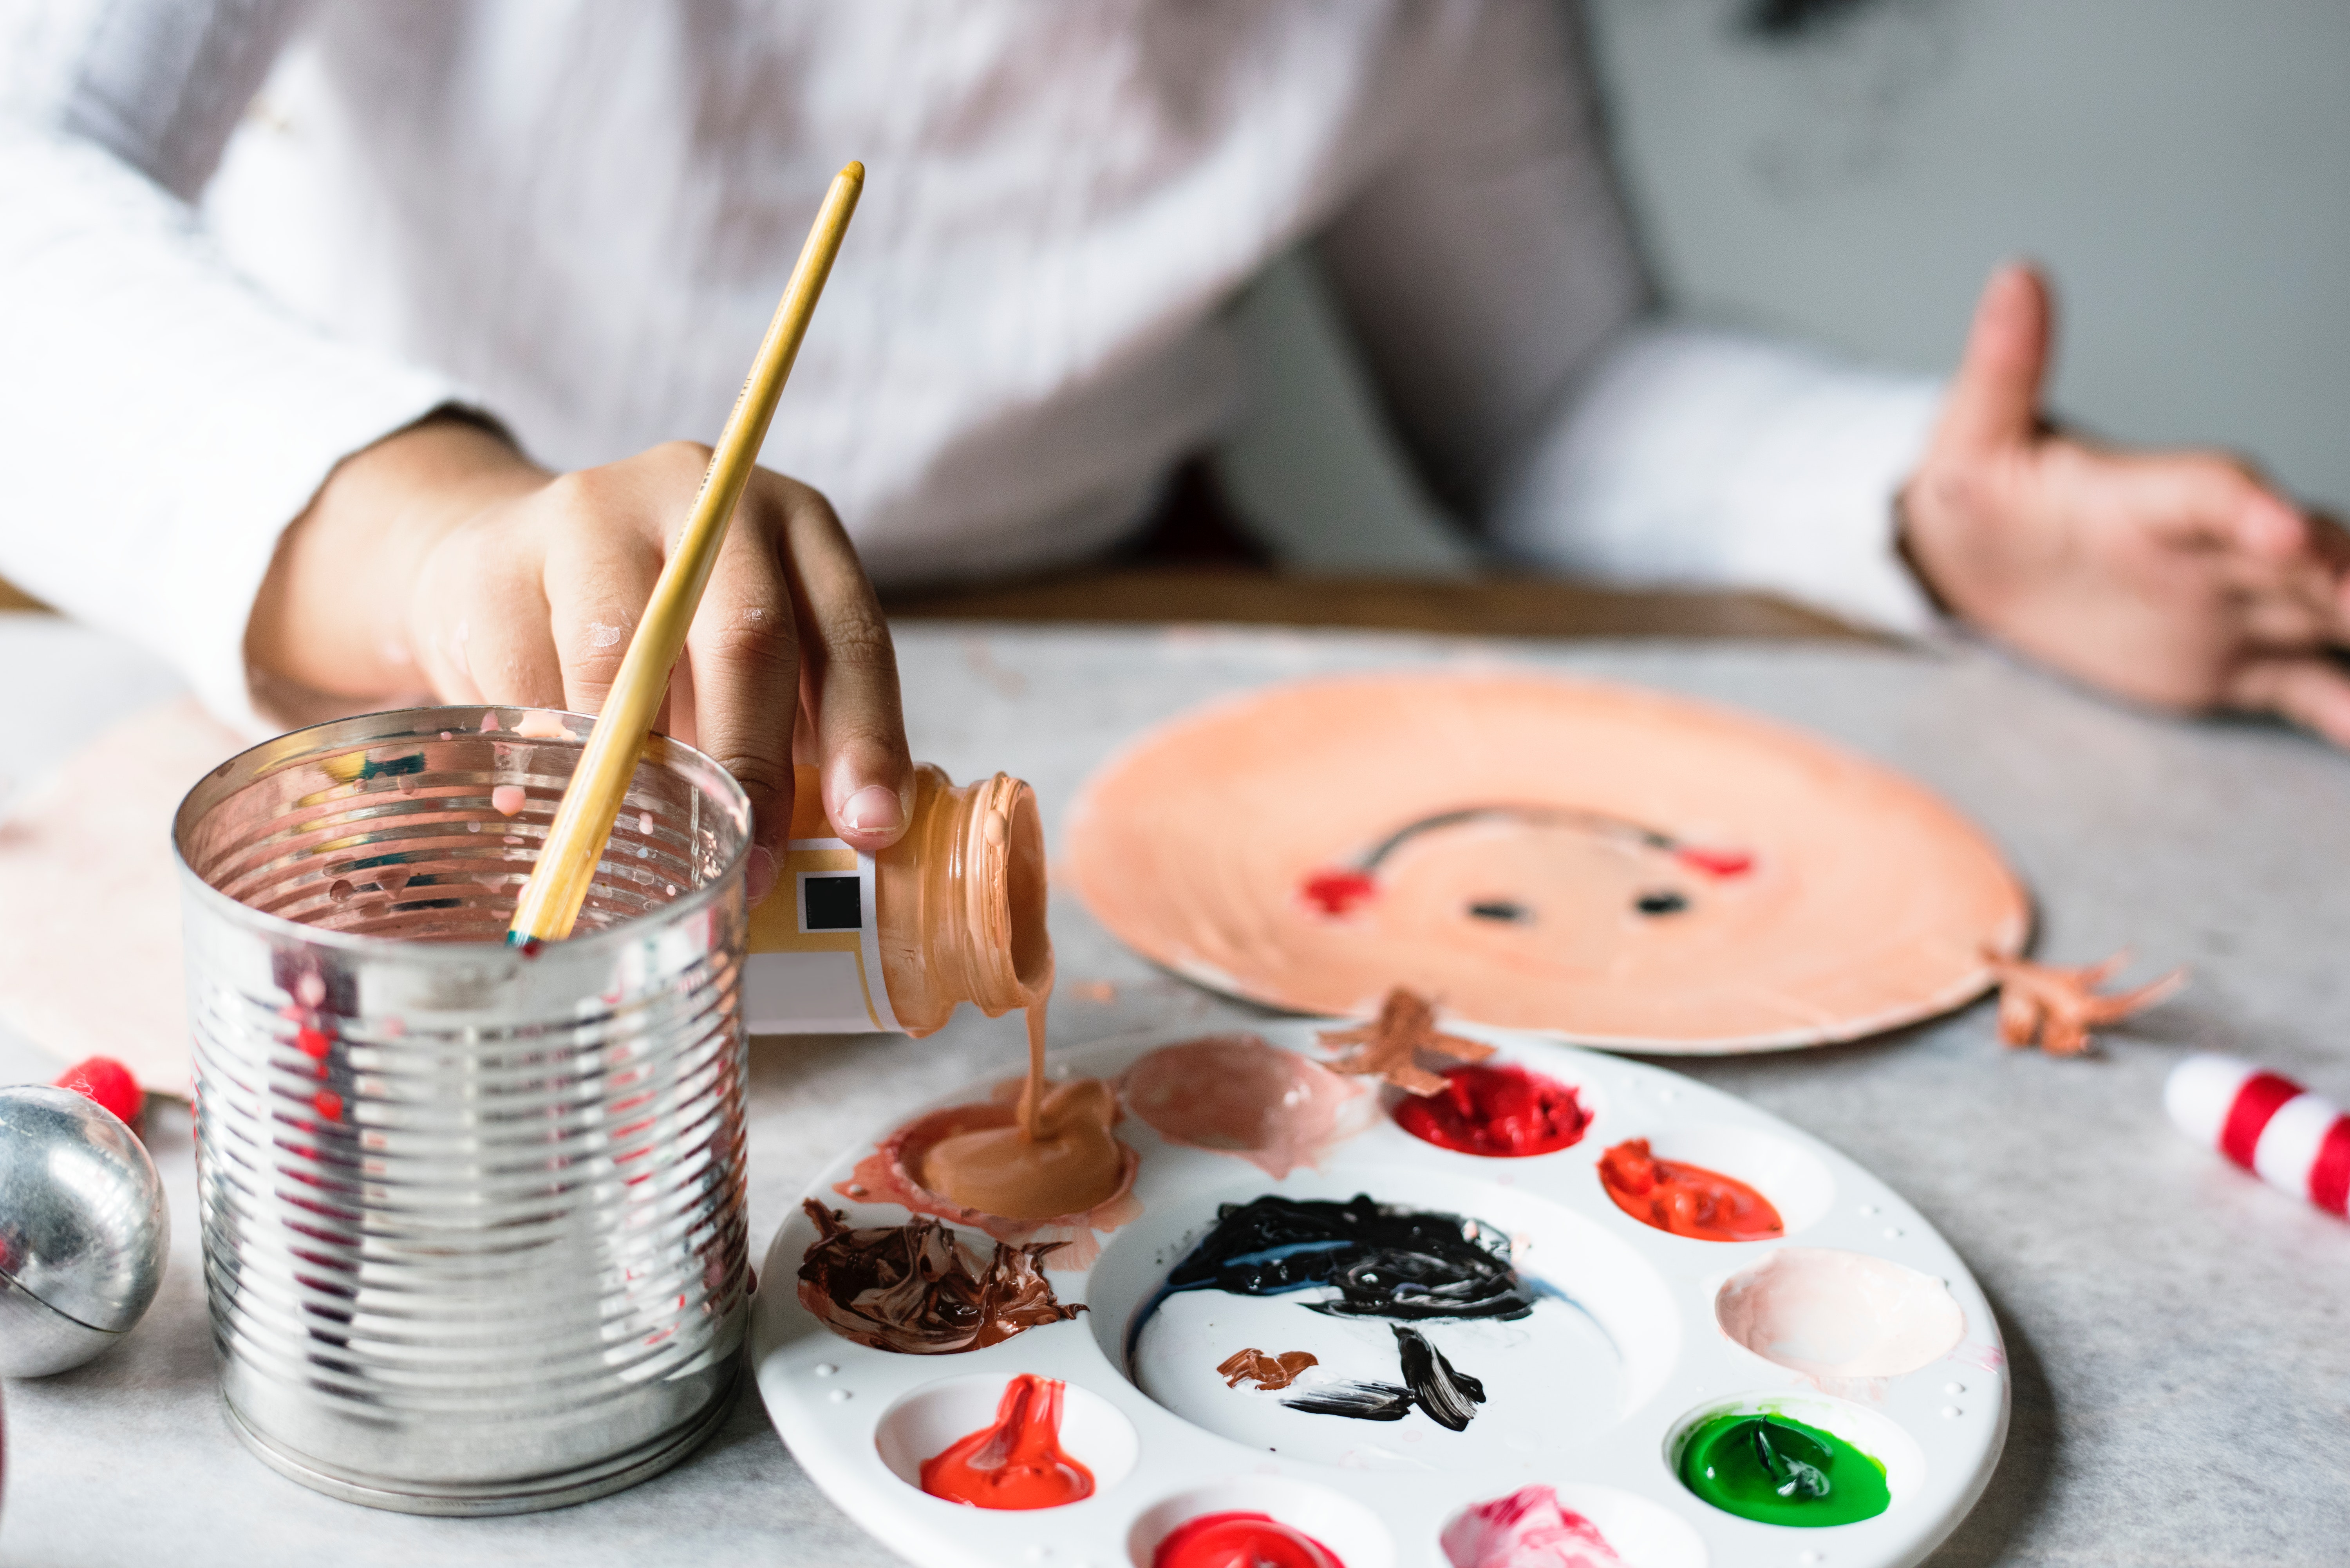 Woman Pouring Down a Brown Paint, Activity, Learning, Elementary, Handmade, HQ Photo